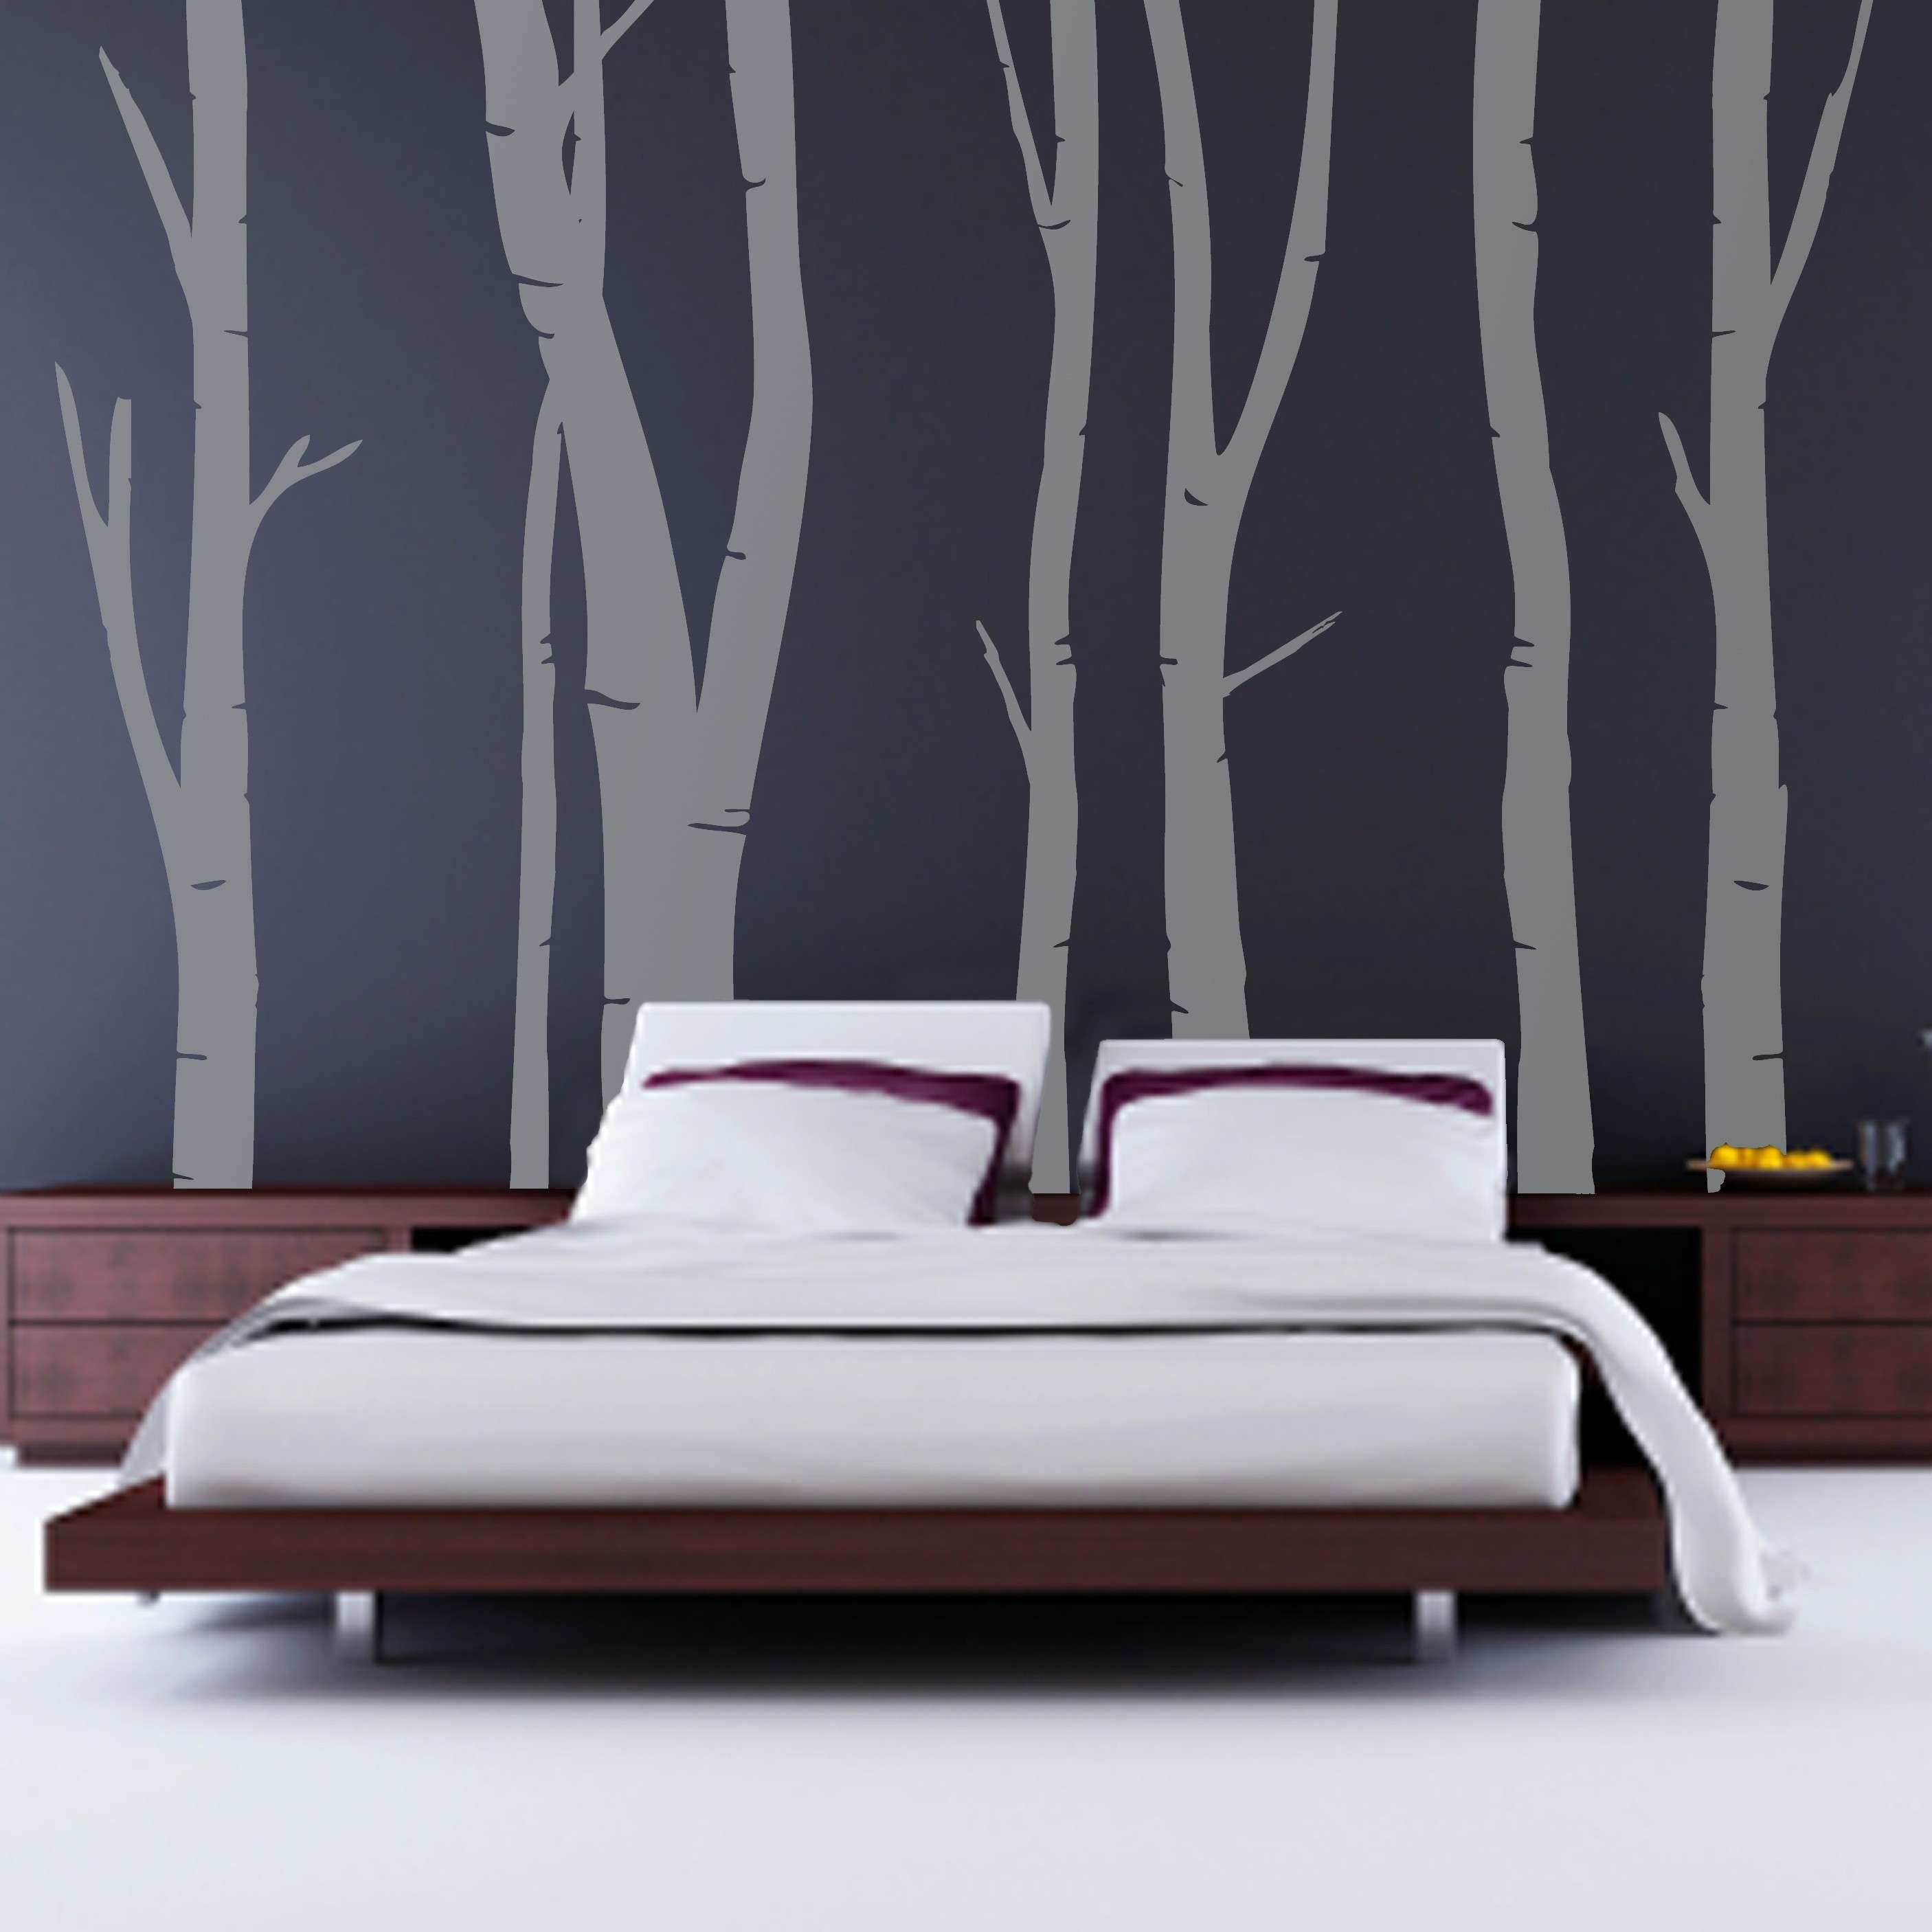 Wall Art for Guys Bedroom Elegant Wall Decals for Bedroom Unique 1